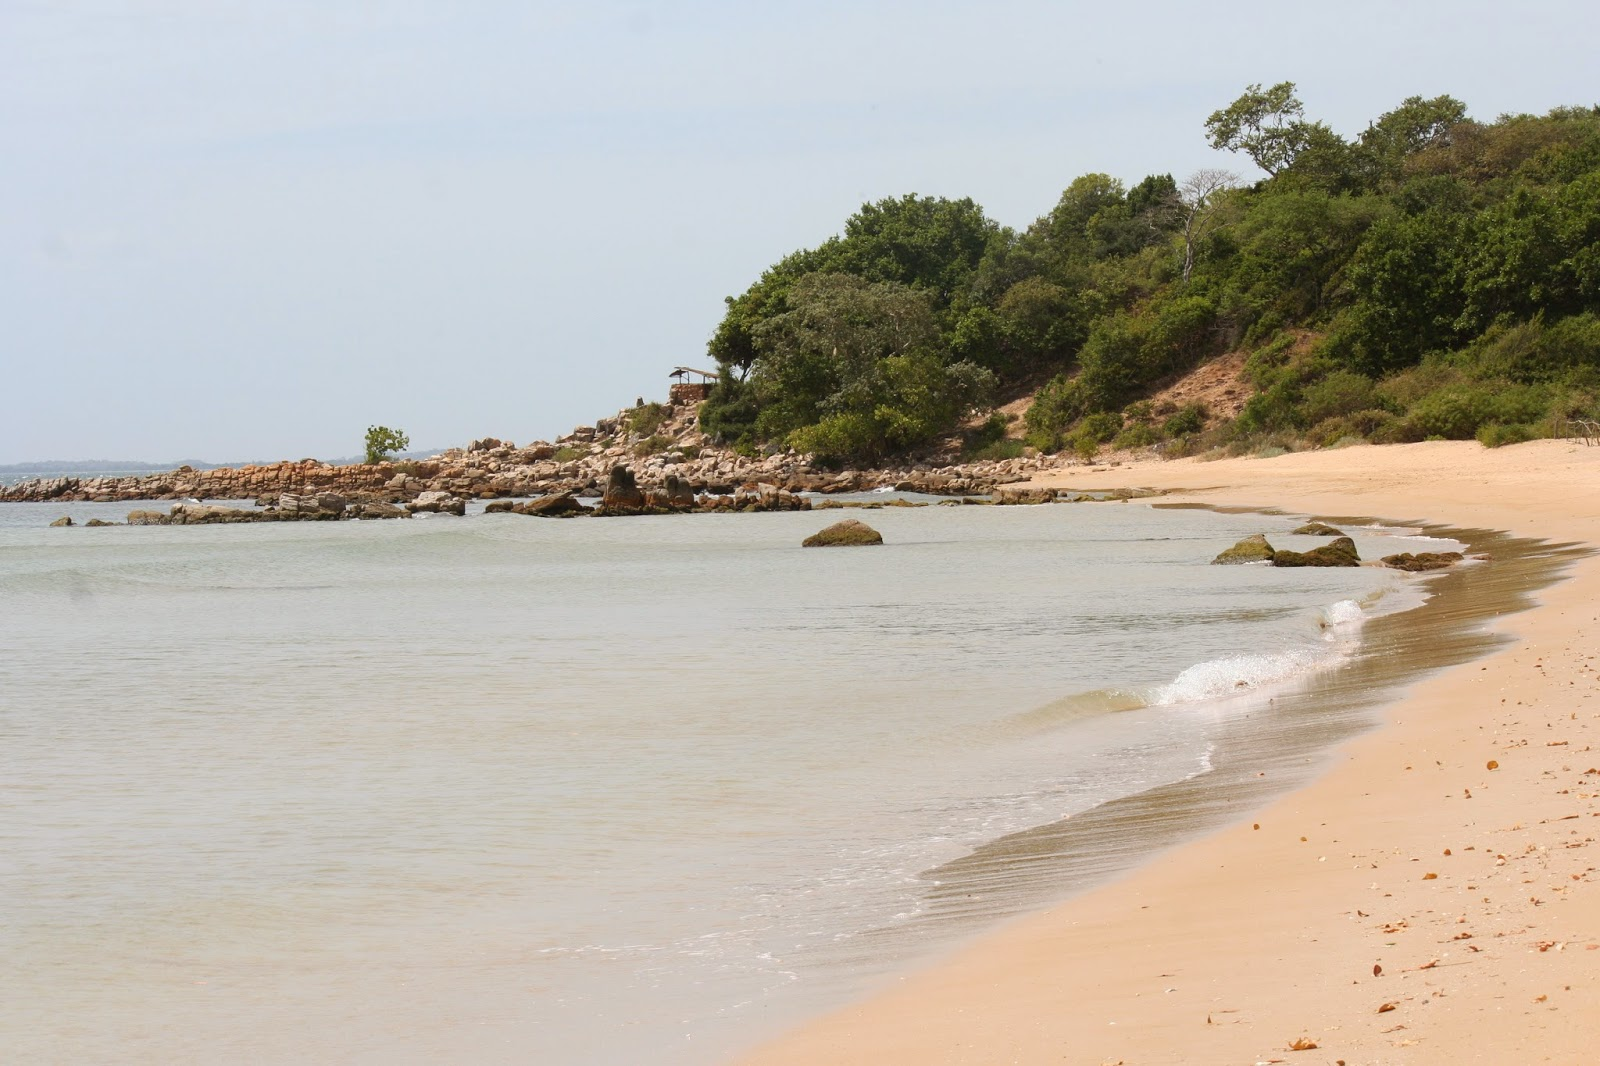 Trincomalee Beach wallpaper images